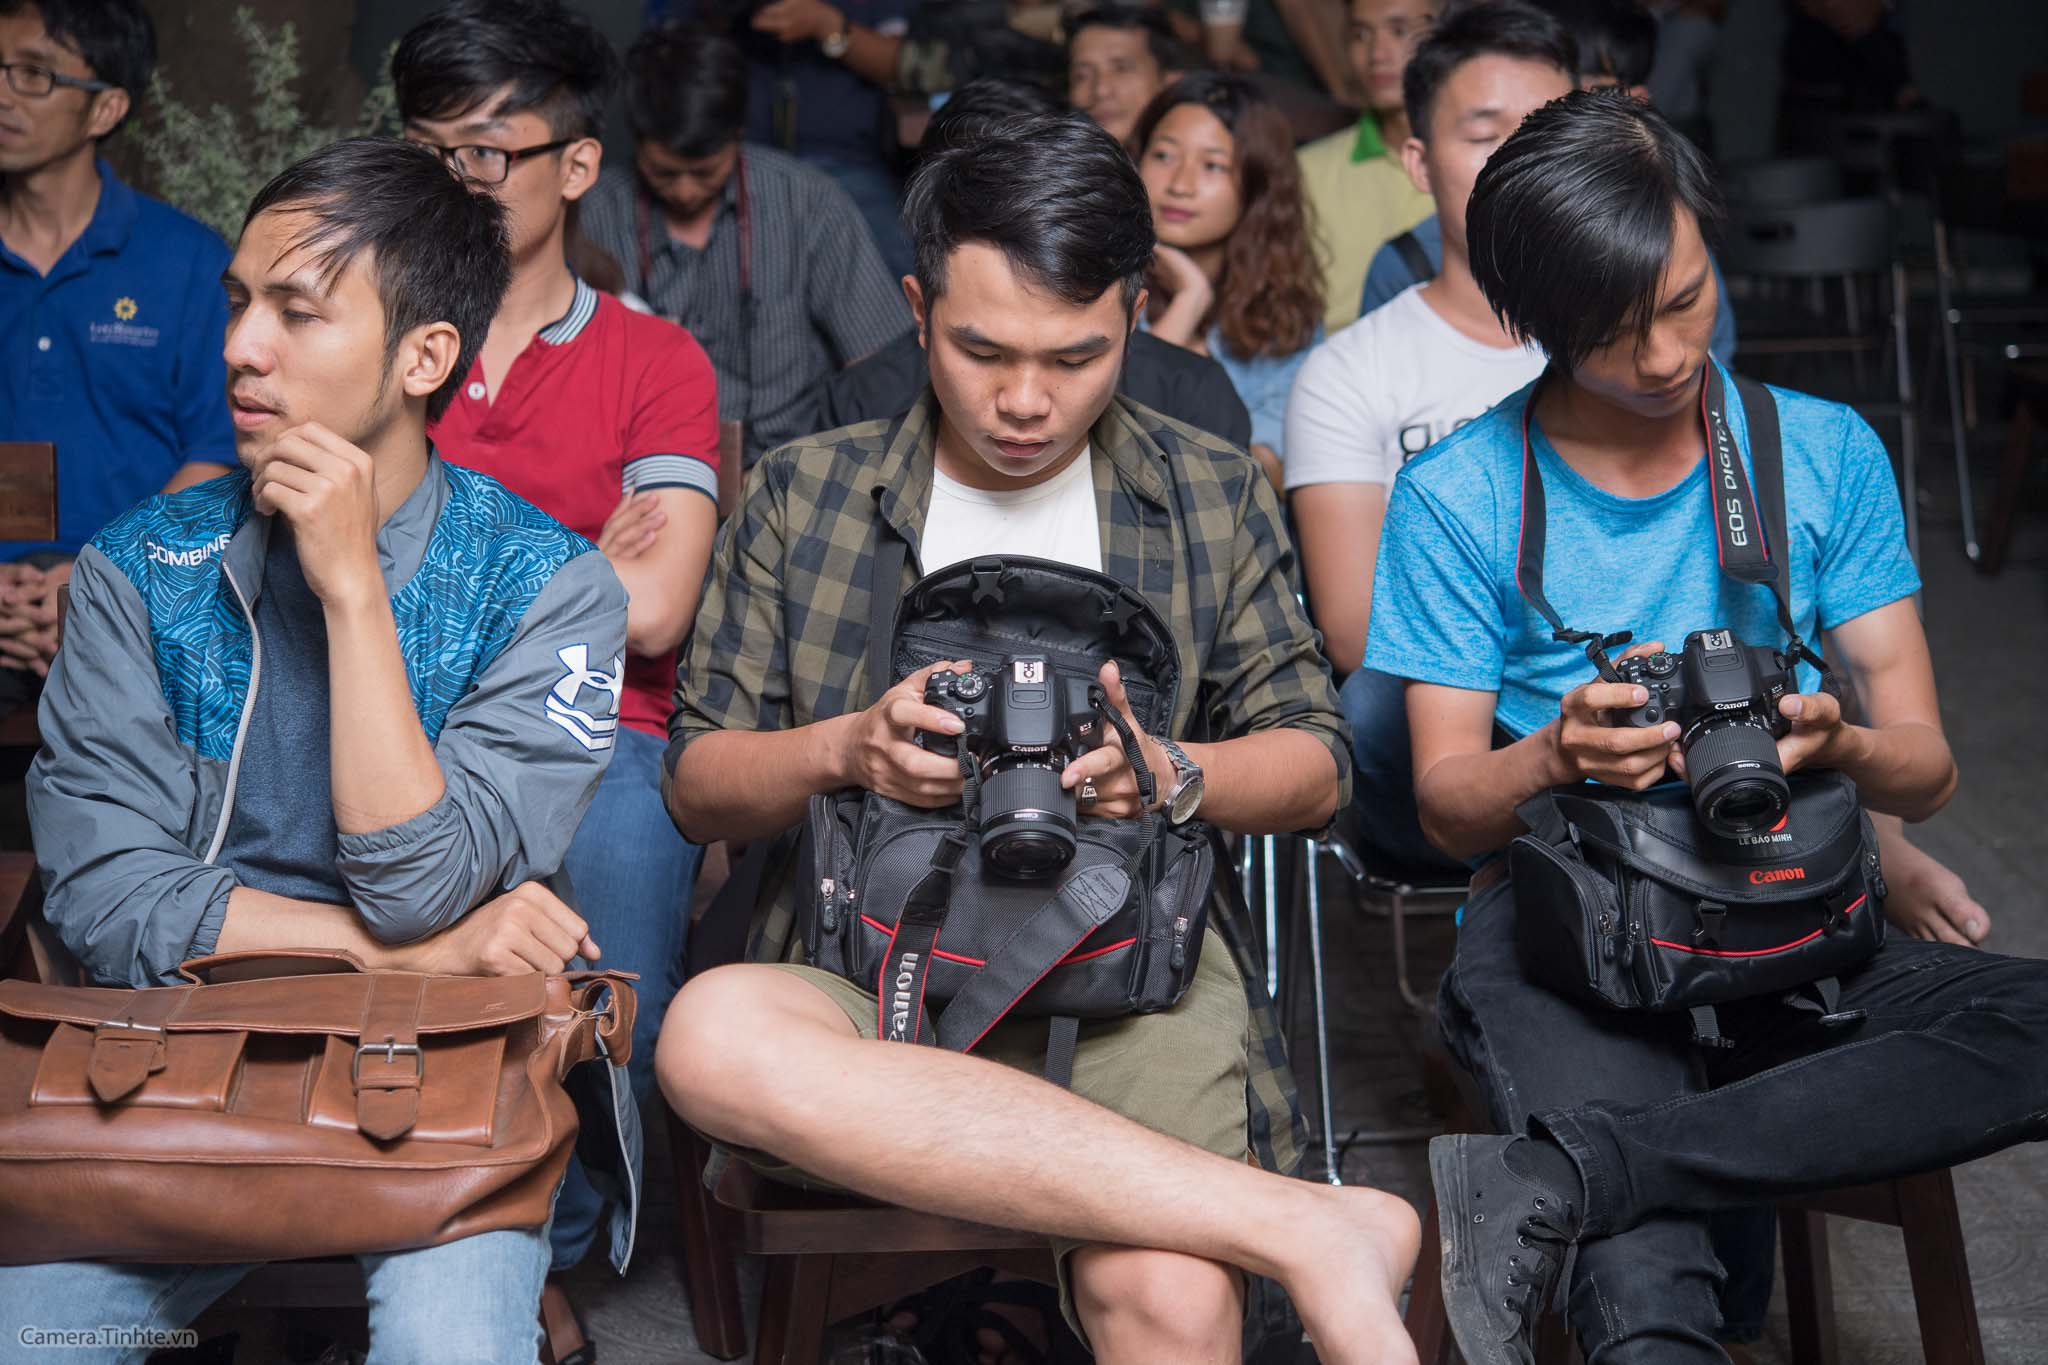 Workshop chup anh the thao - Camera.tinhte.vn-5.jpg